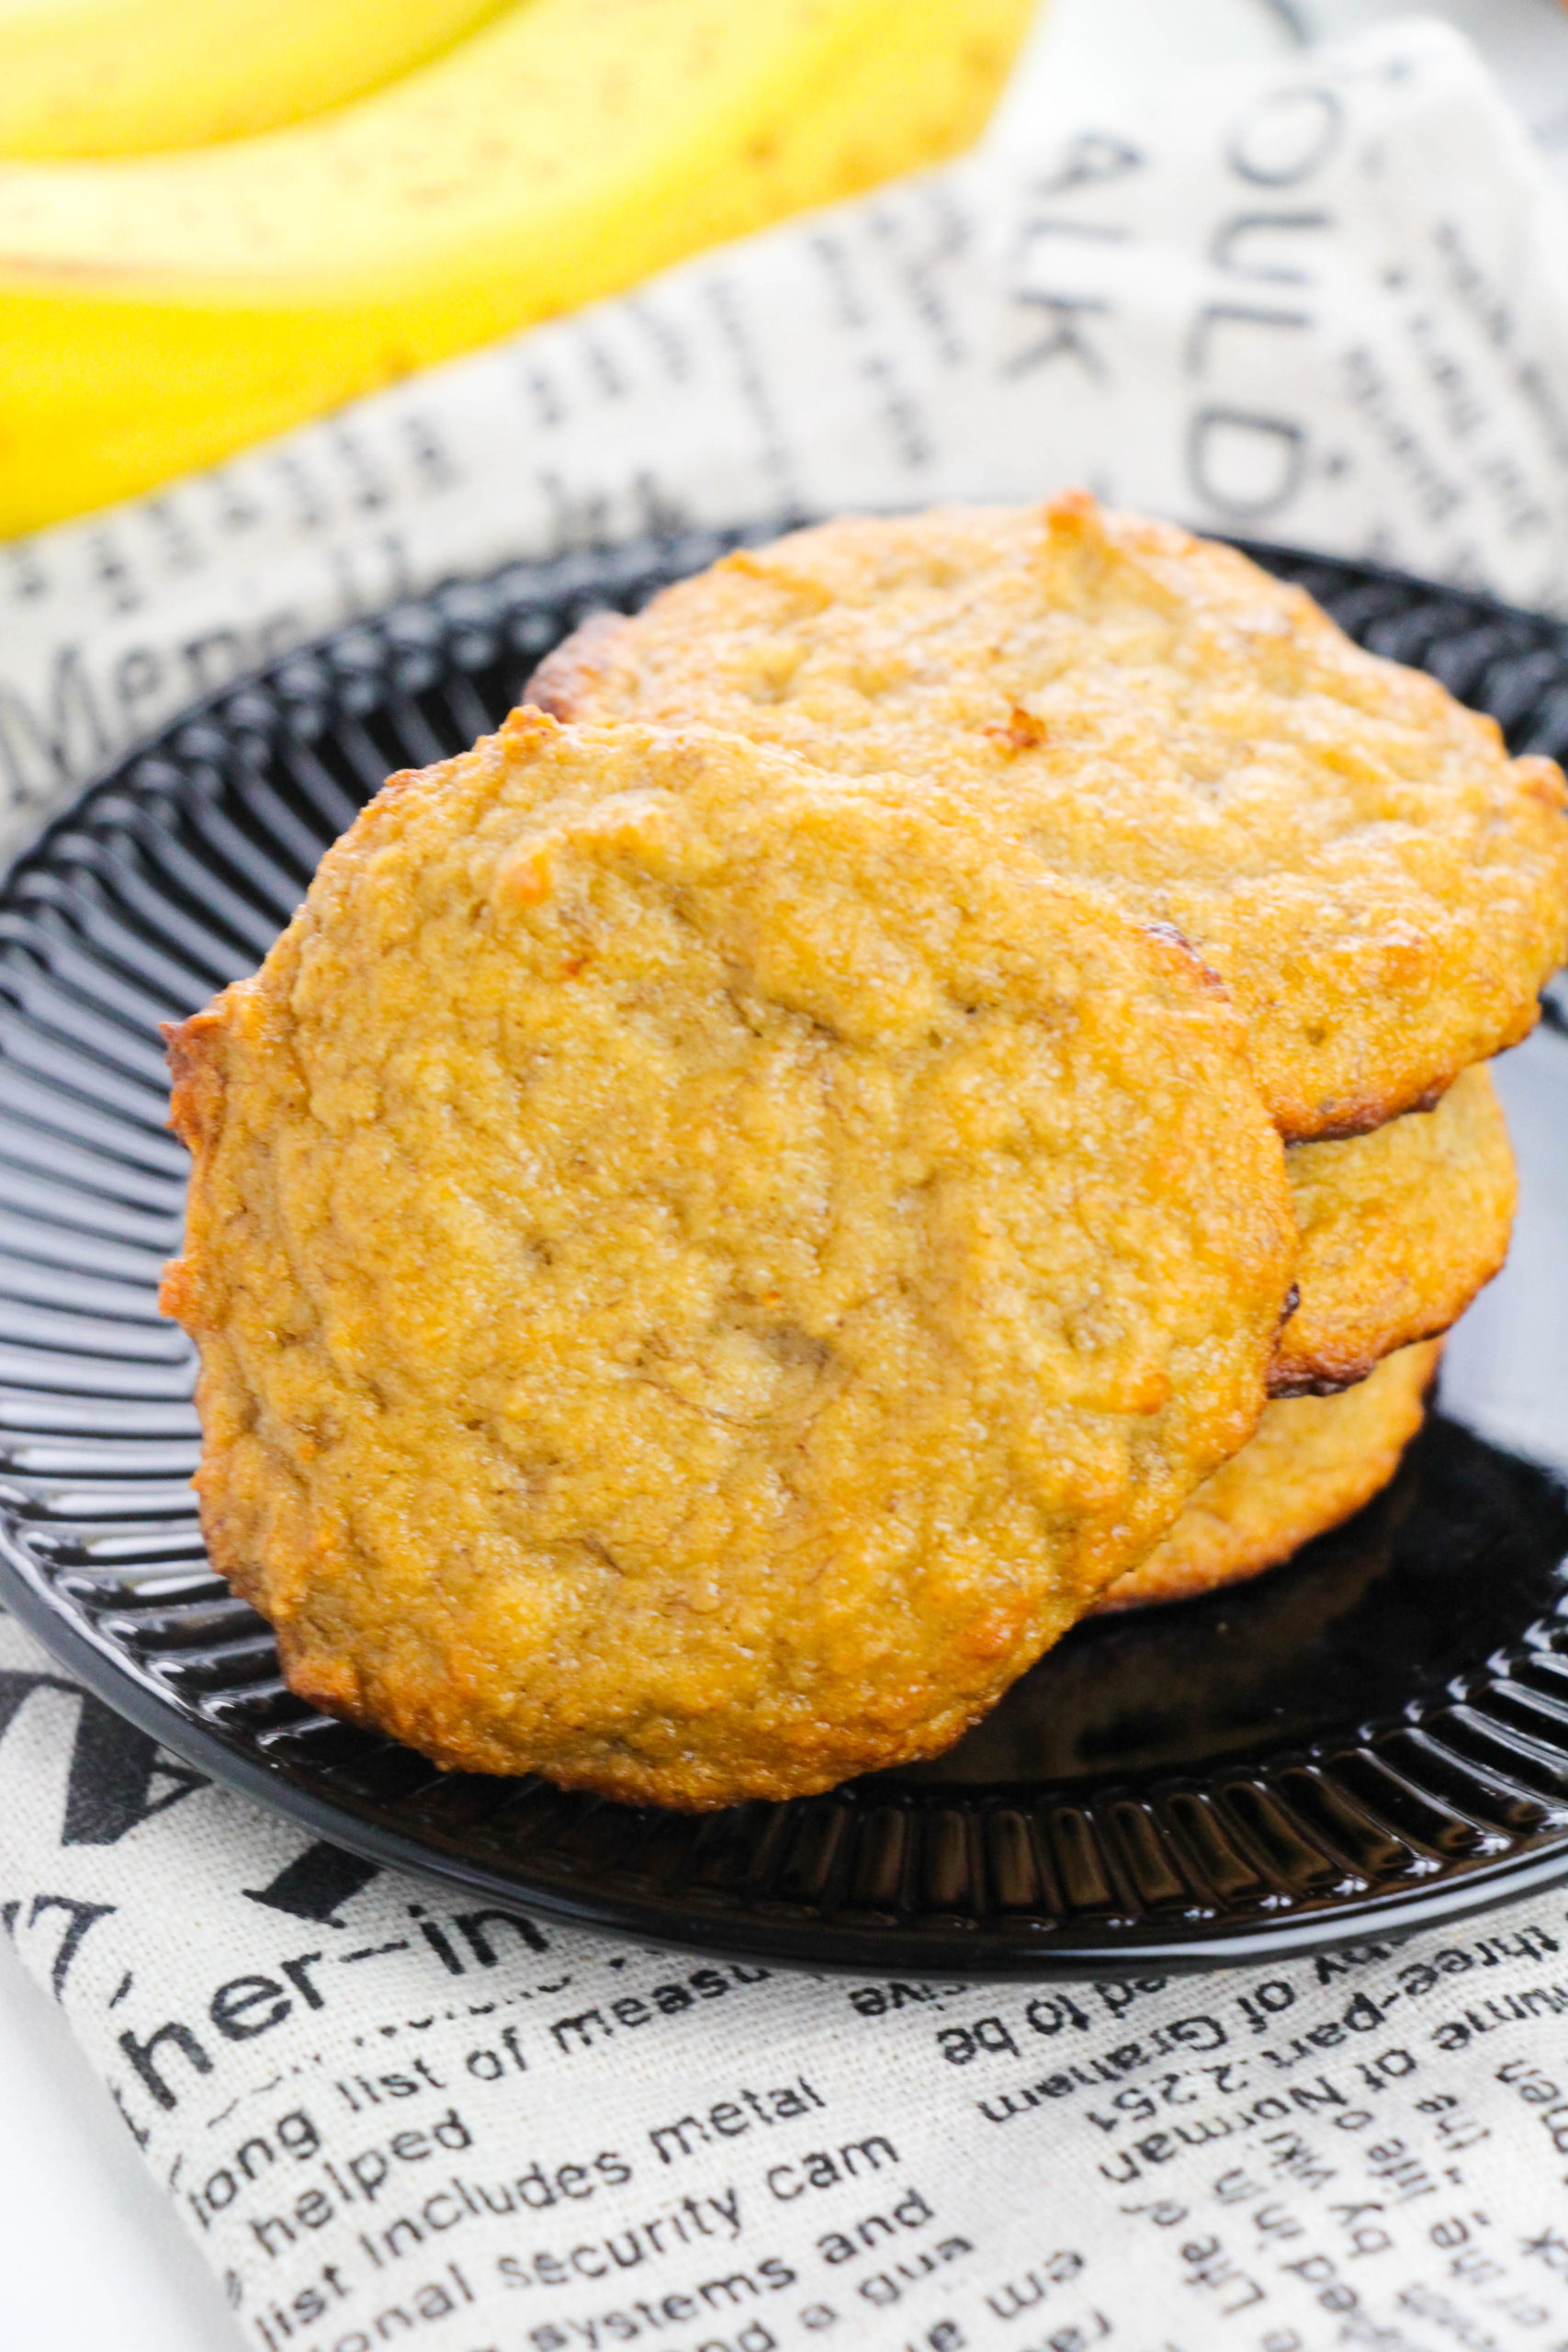 Stack of four banana bread cookies on a black plate with one laying on the side.